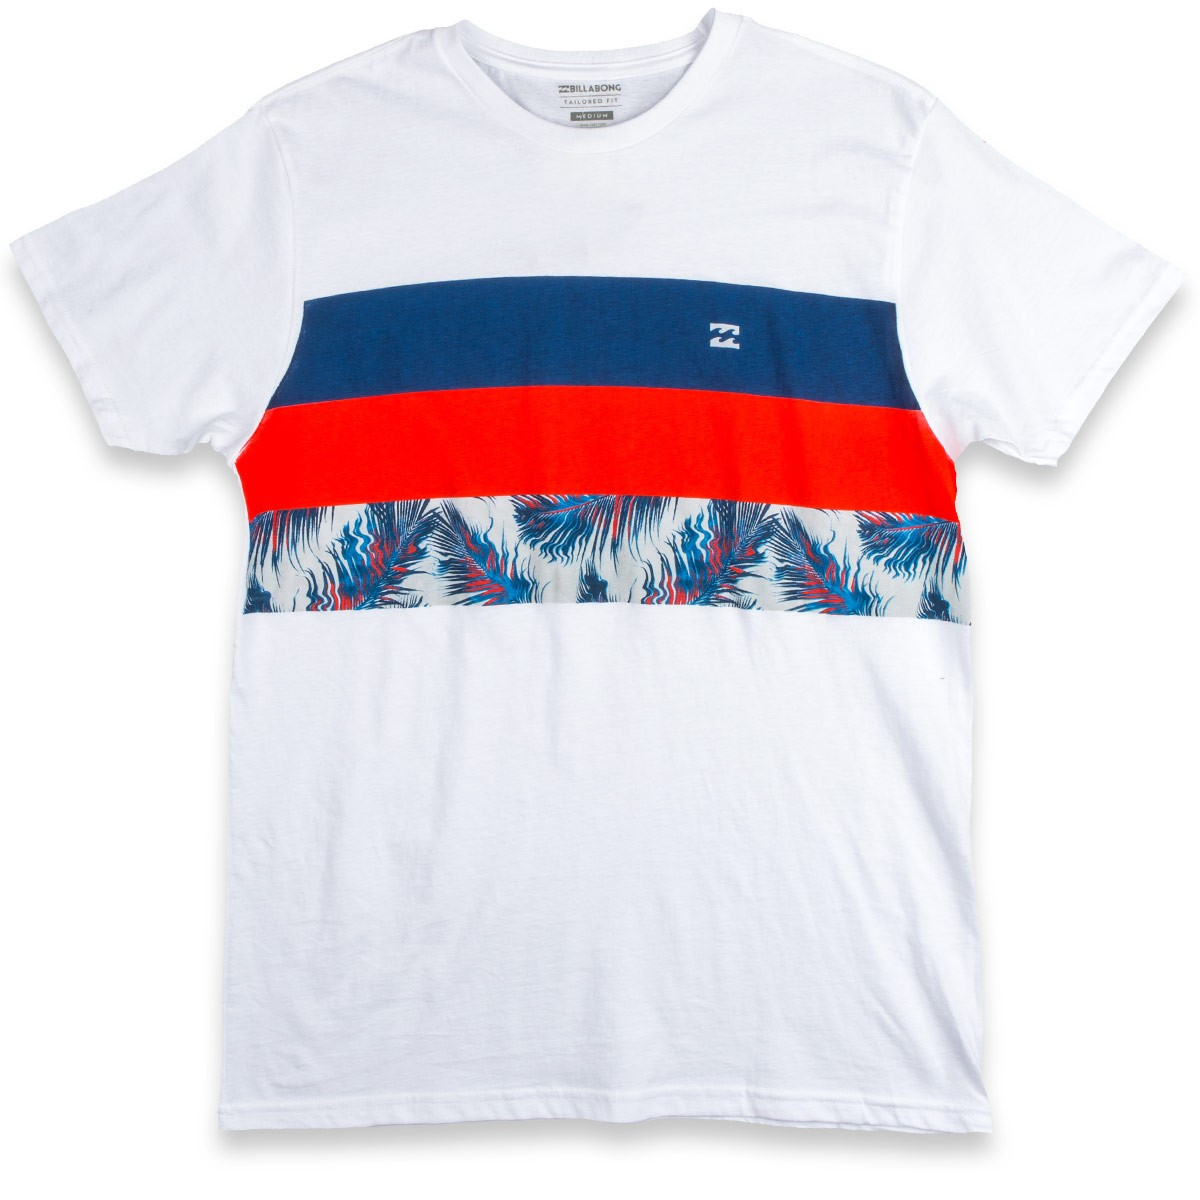 billabong tshirt  Billabong Tribong Spin T-Shirt - White